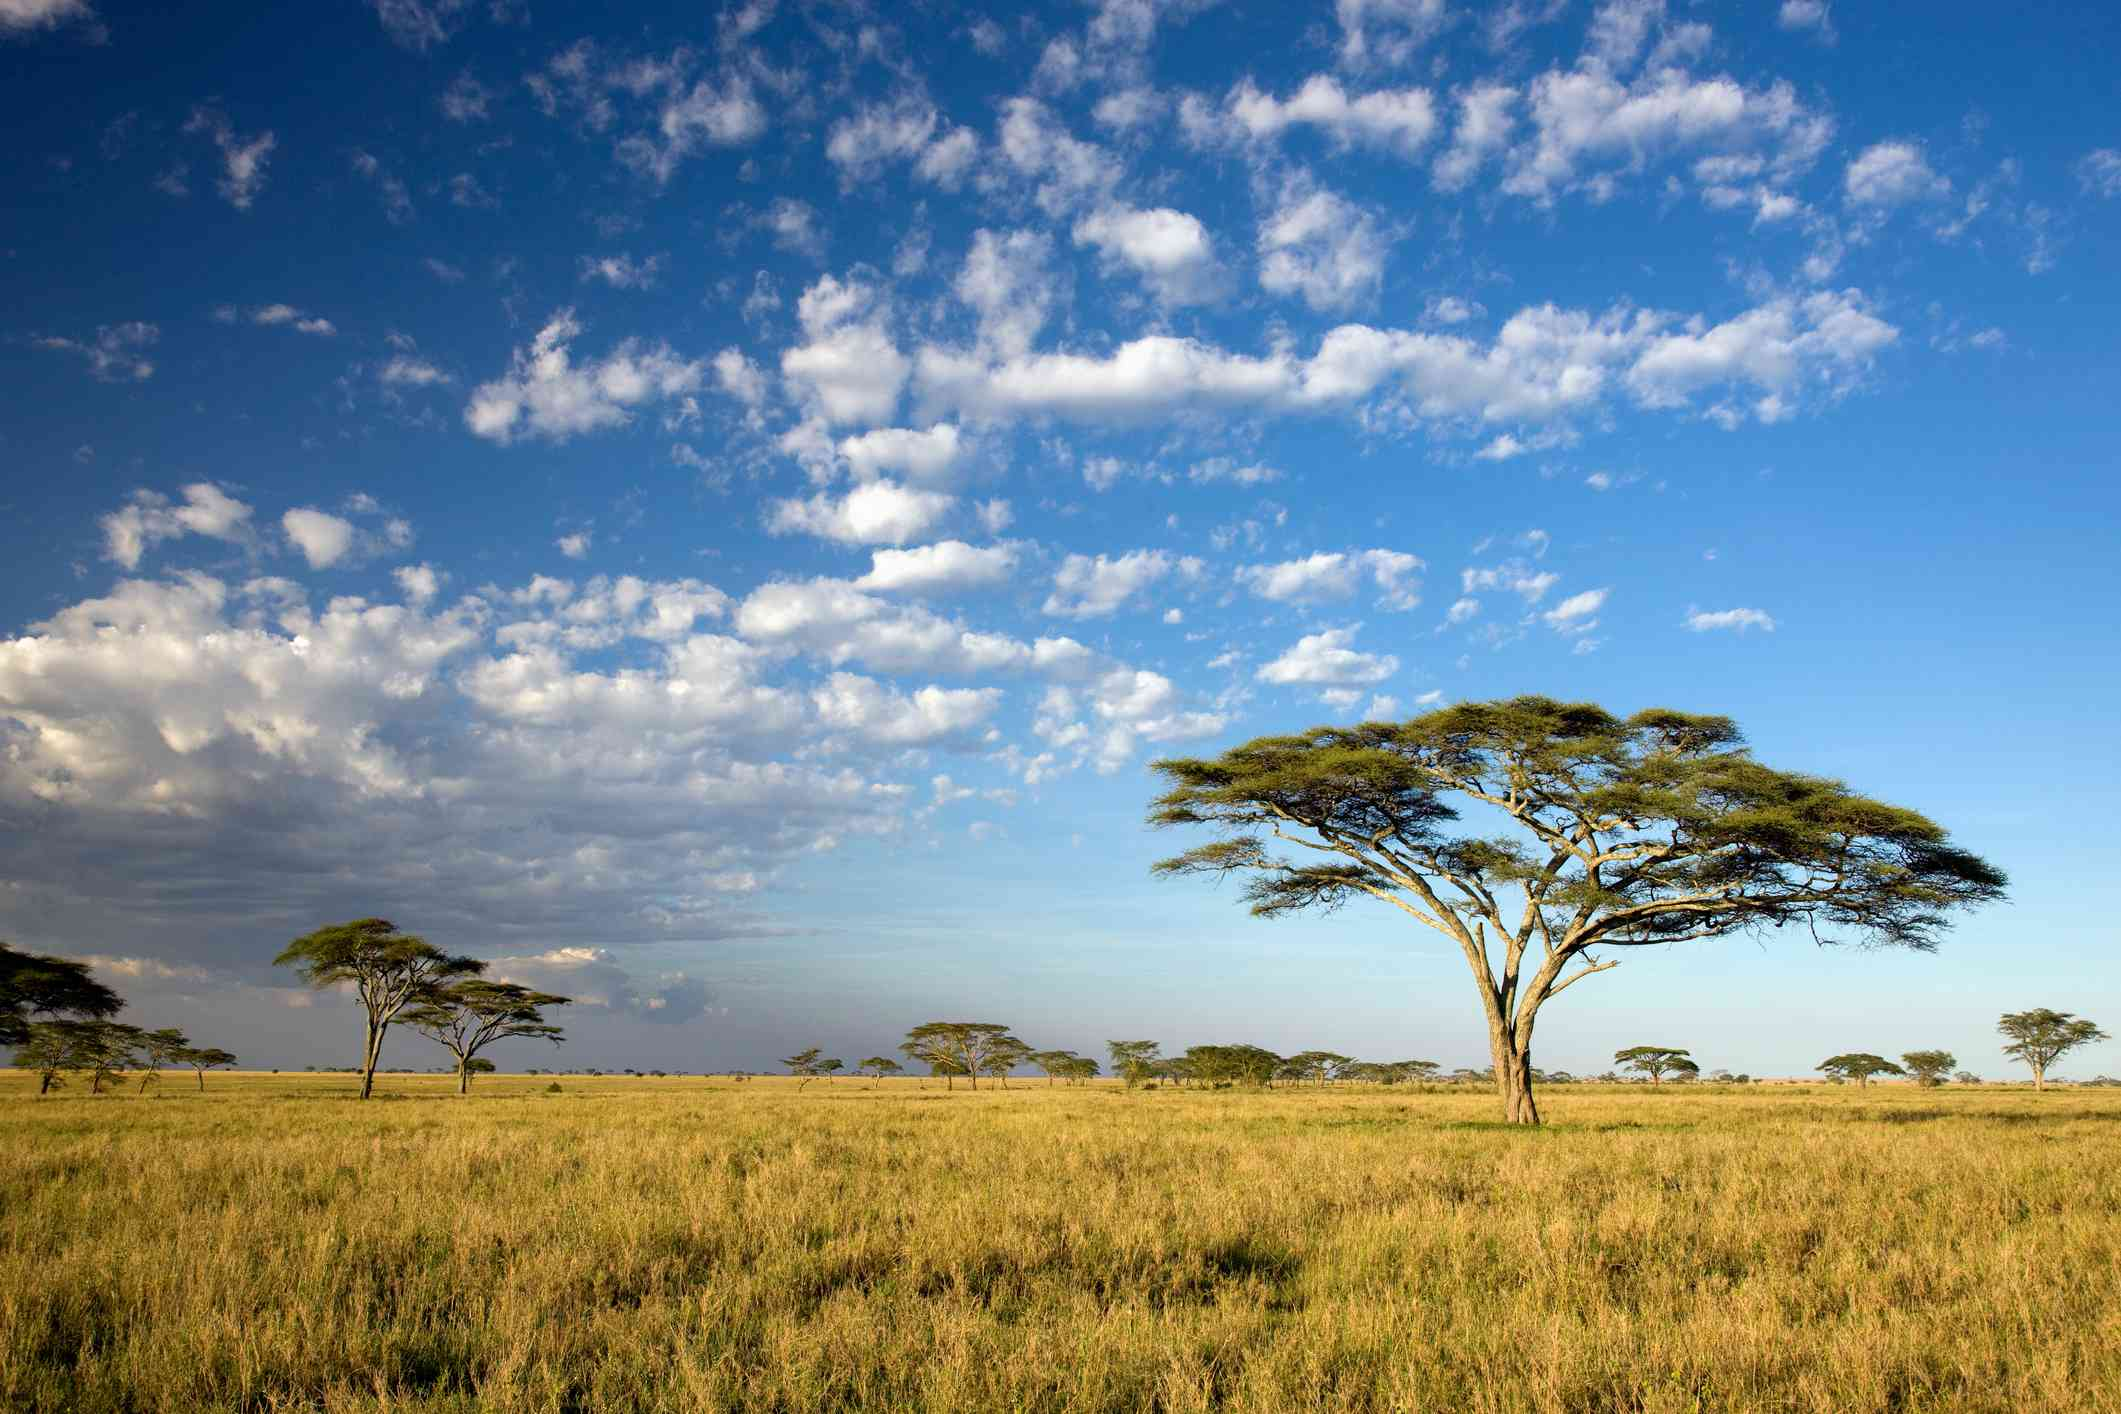 Acacia trees under blue sky with clouds in Serengeti national park